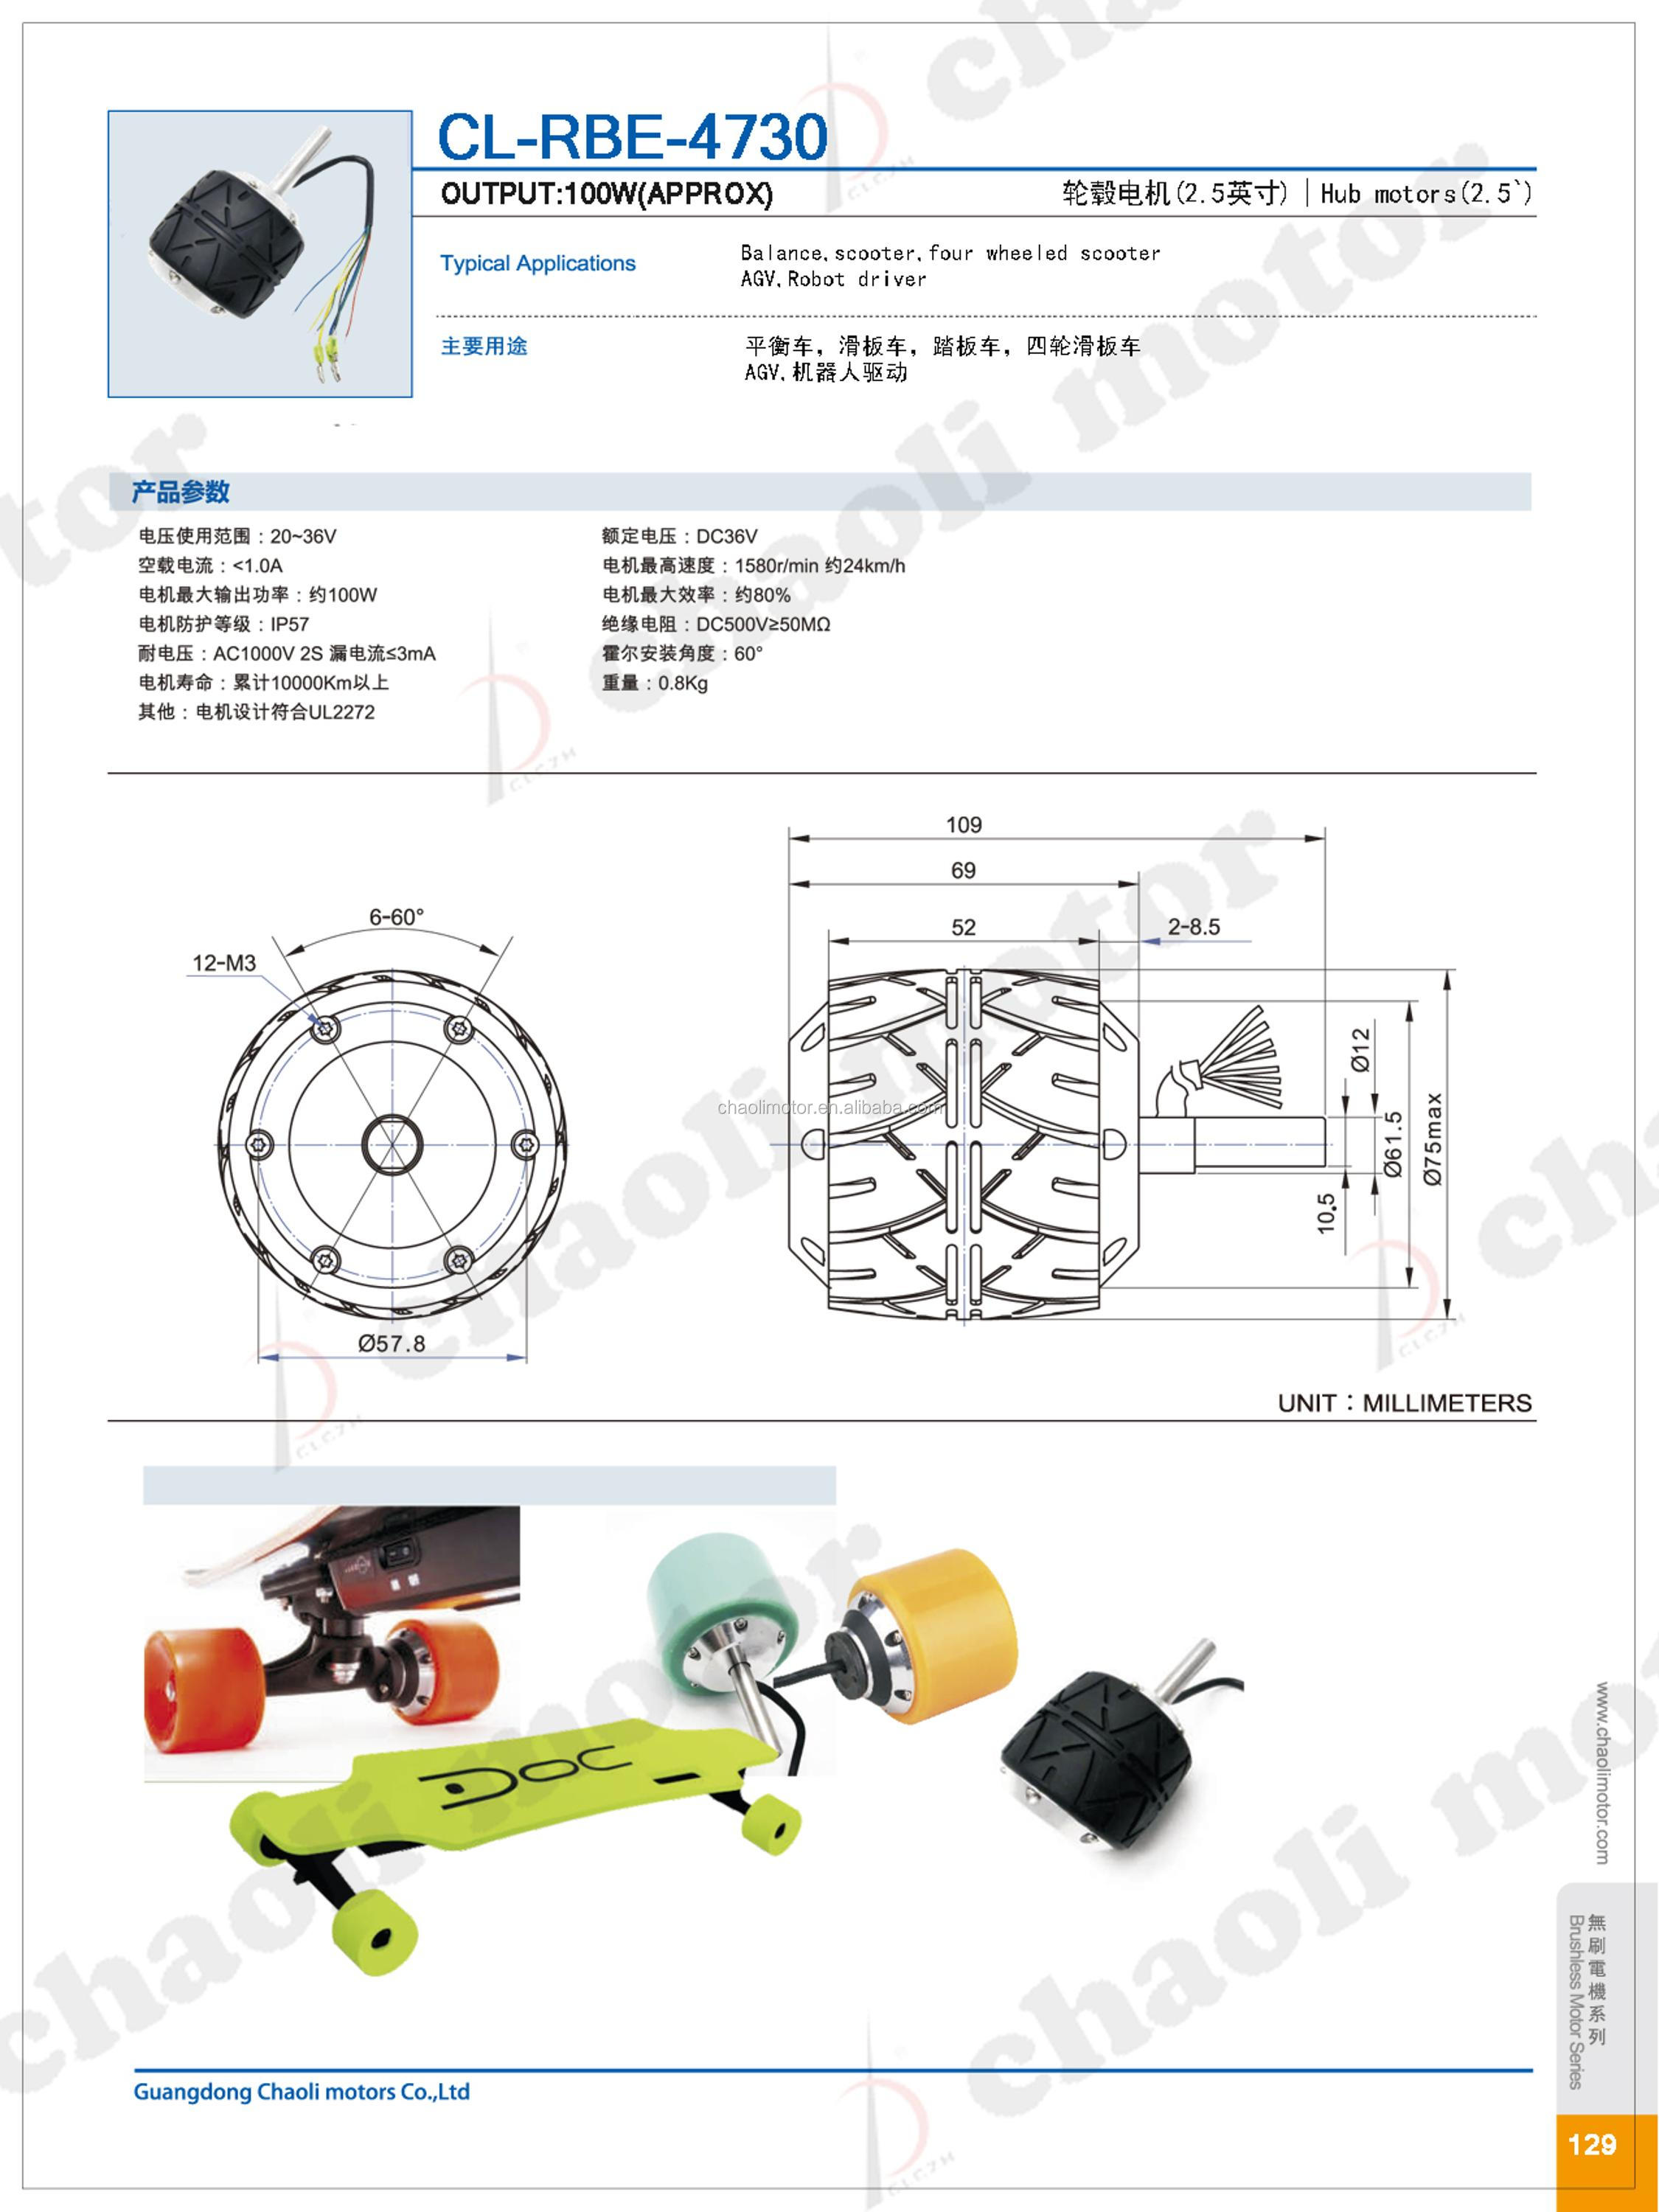 2.5 inch wheel hub motor CL-RBE-4730 with 36V and 100W for scooter AGV and balance-chaoli2017